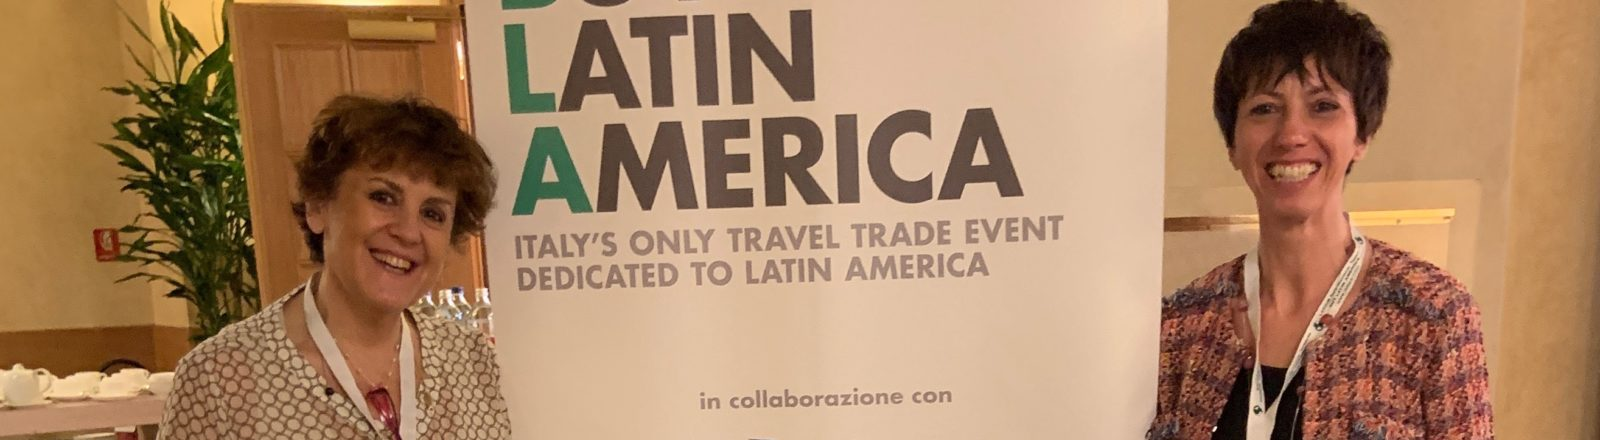 Al via il Buy Latin America 2019